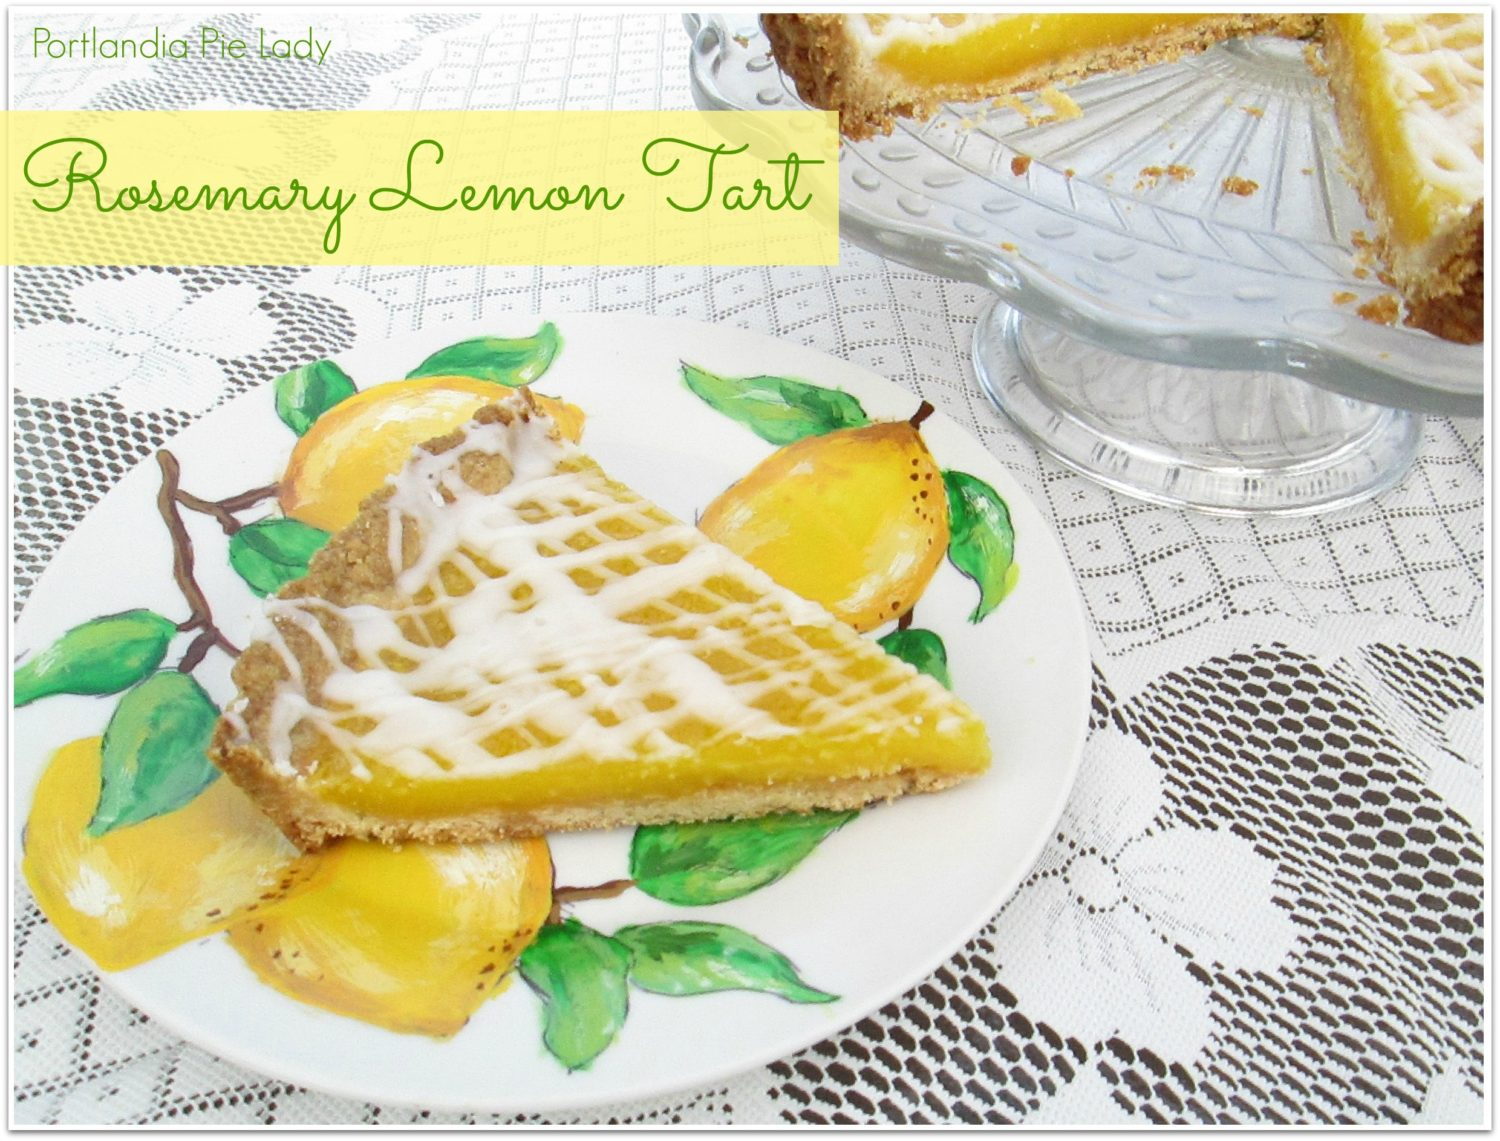 Rosemary Lemon Tart: This is a luscious lemony dessert, easy to make, and a perfect way to finish off any spring day.